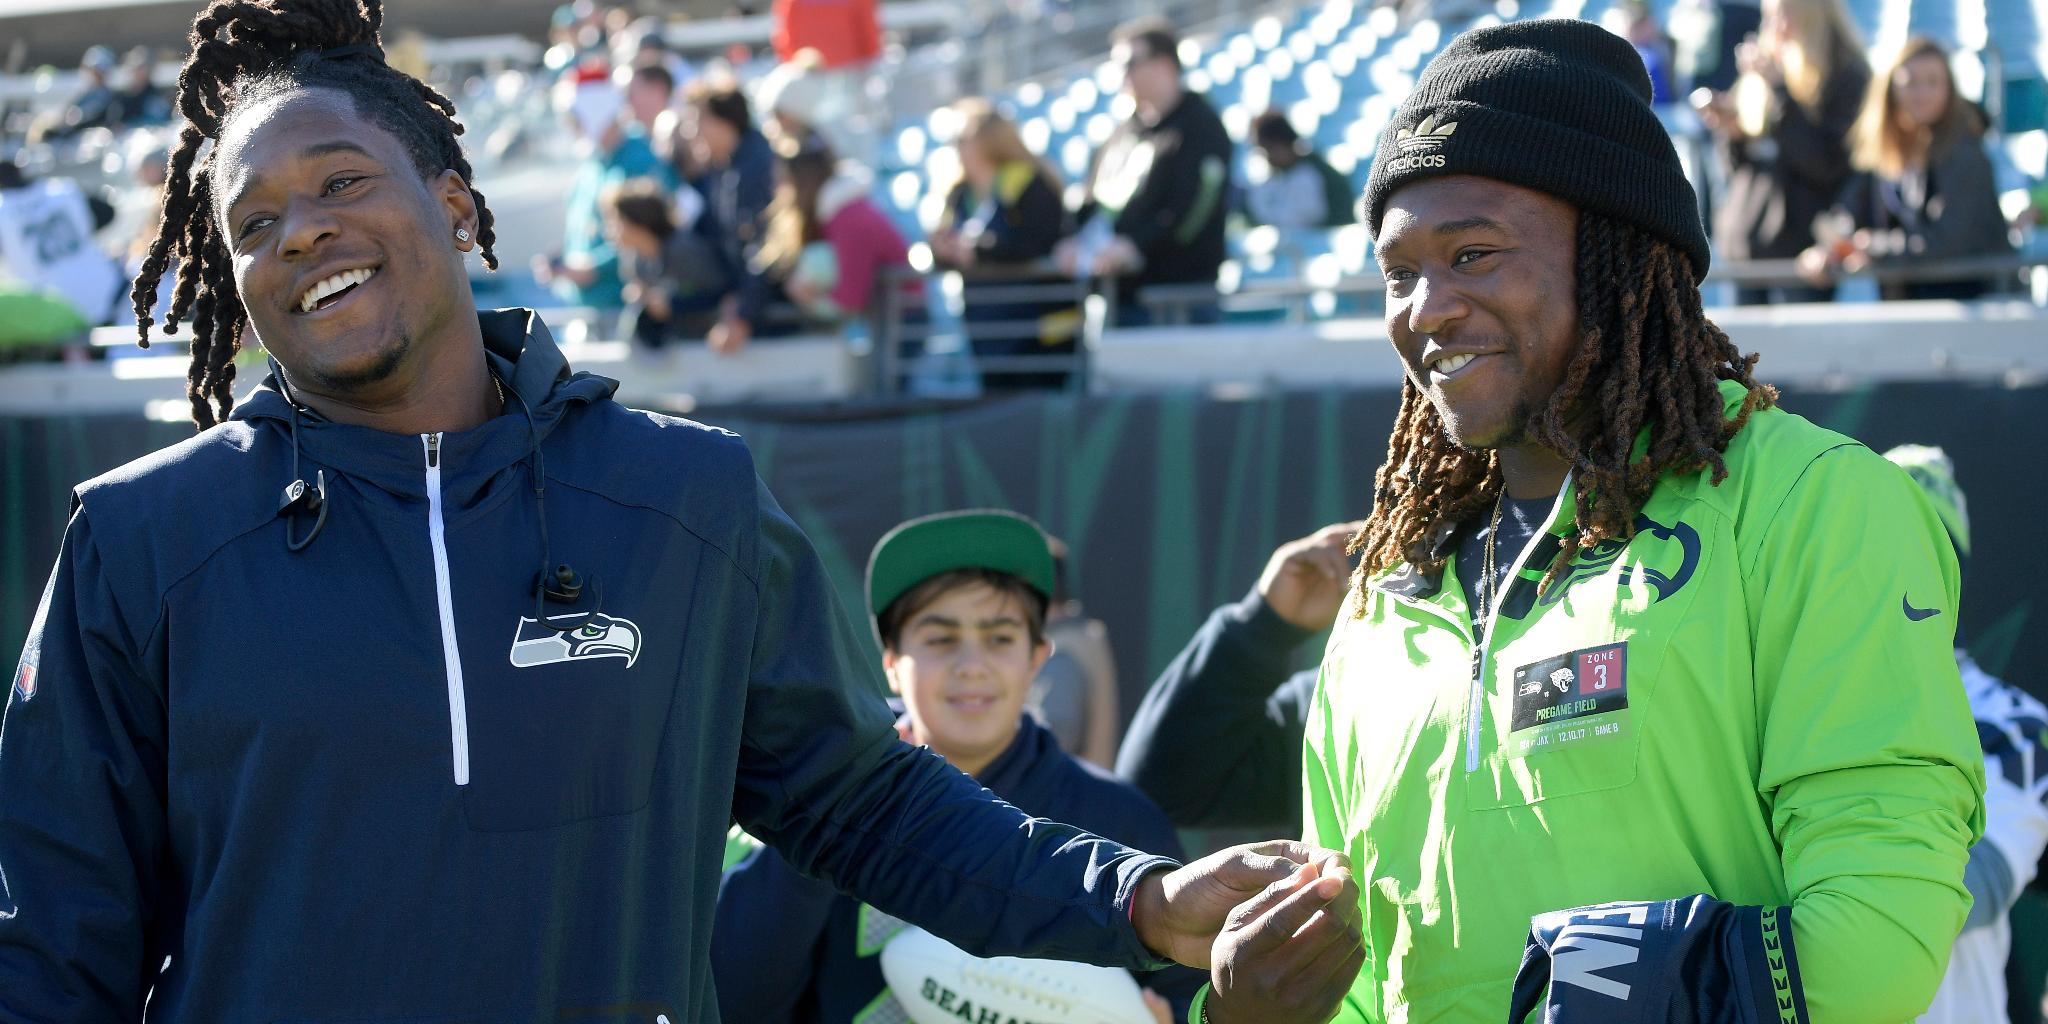 .@Shaquemgriffin + @ShaquillG.  Plus seven more @NFLDraft prospects with family ties: https://t.co/rvnq35Tkug https://t.co/loD2U8b61R